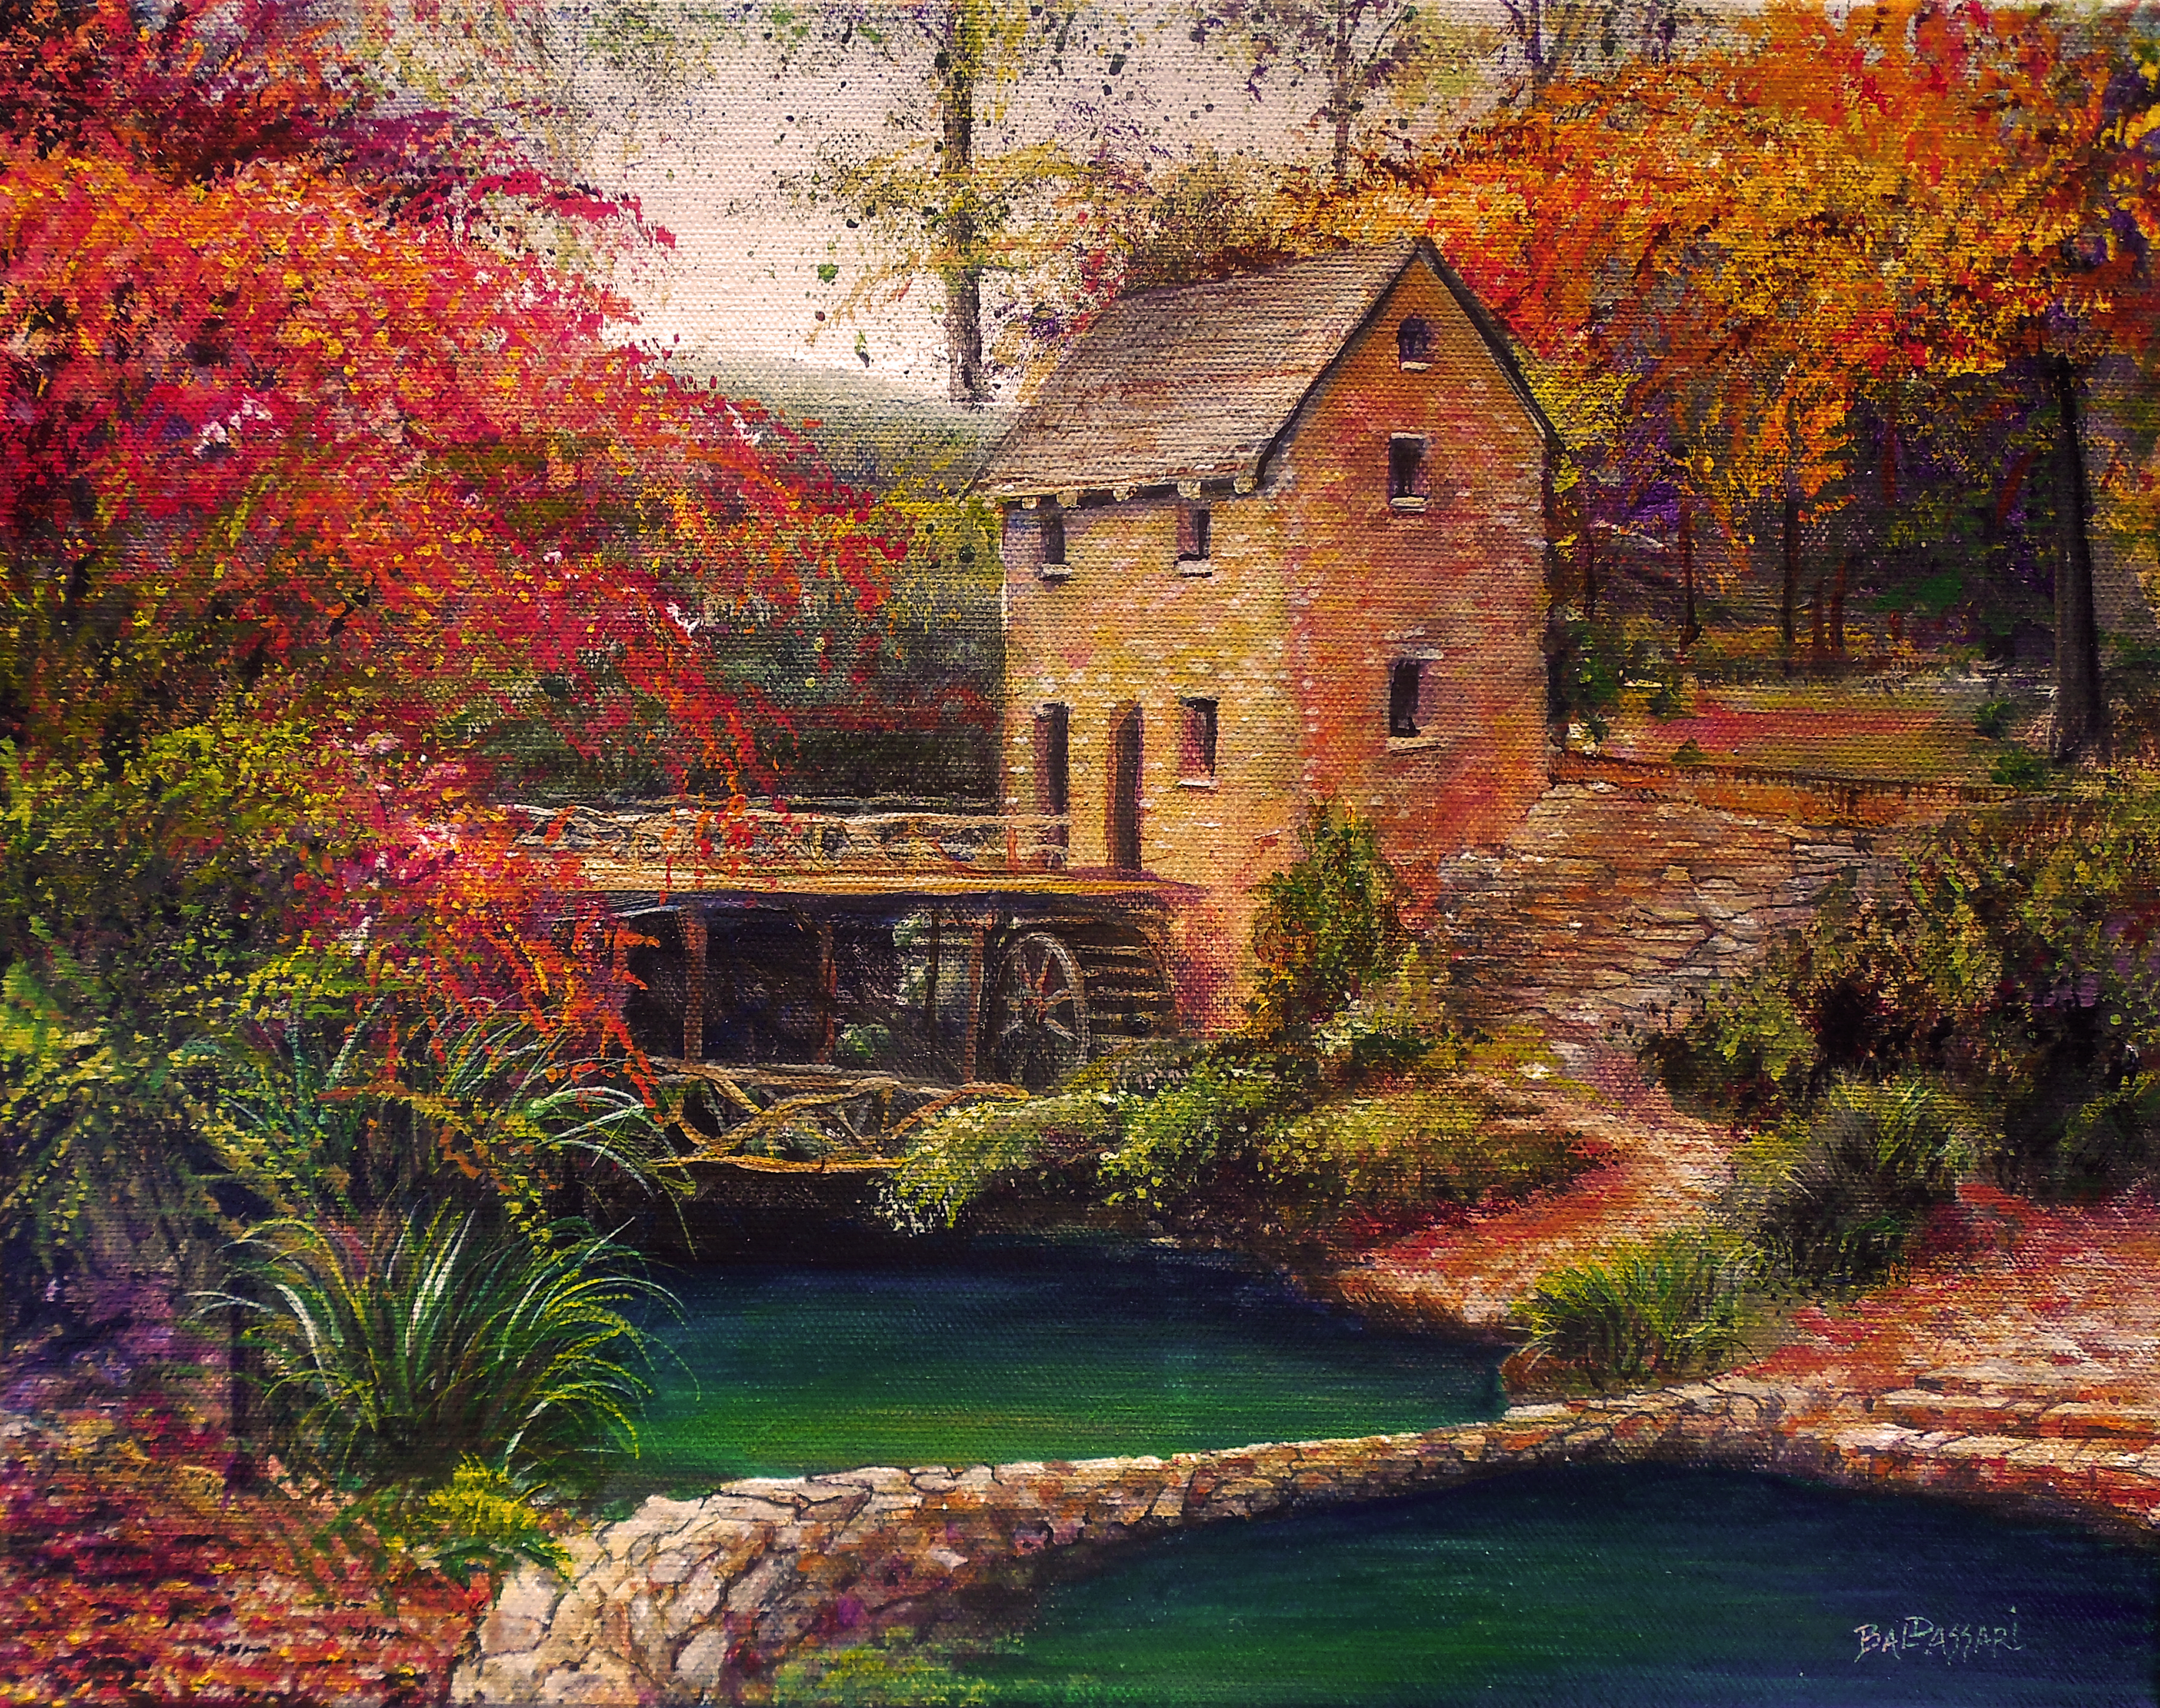 The Little Rock Mill by Scott Baldassari